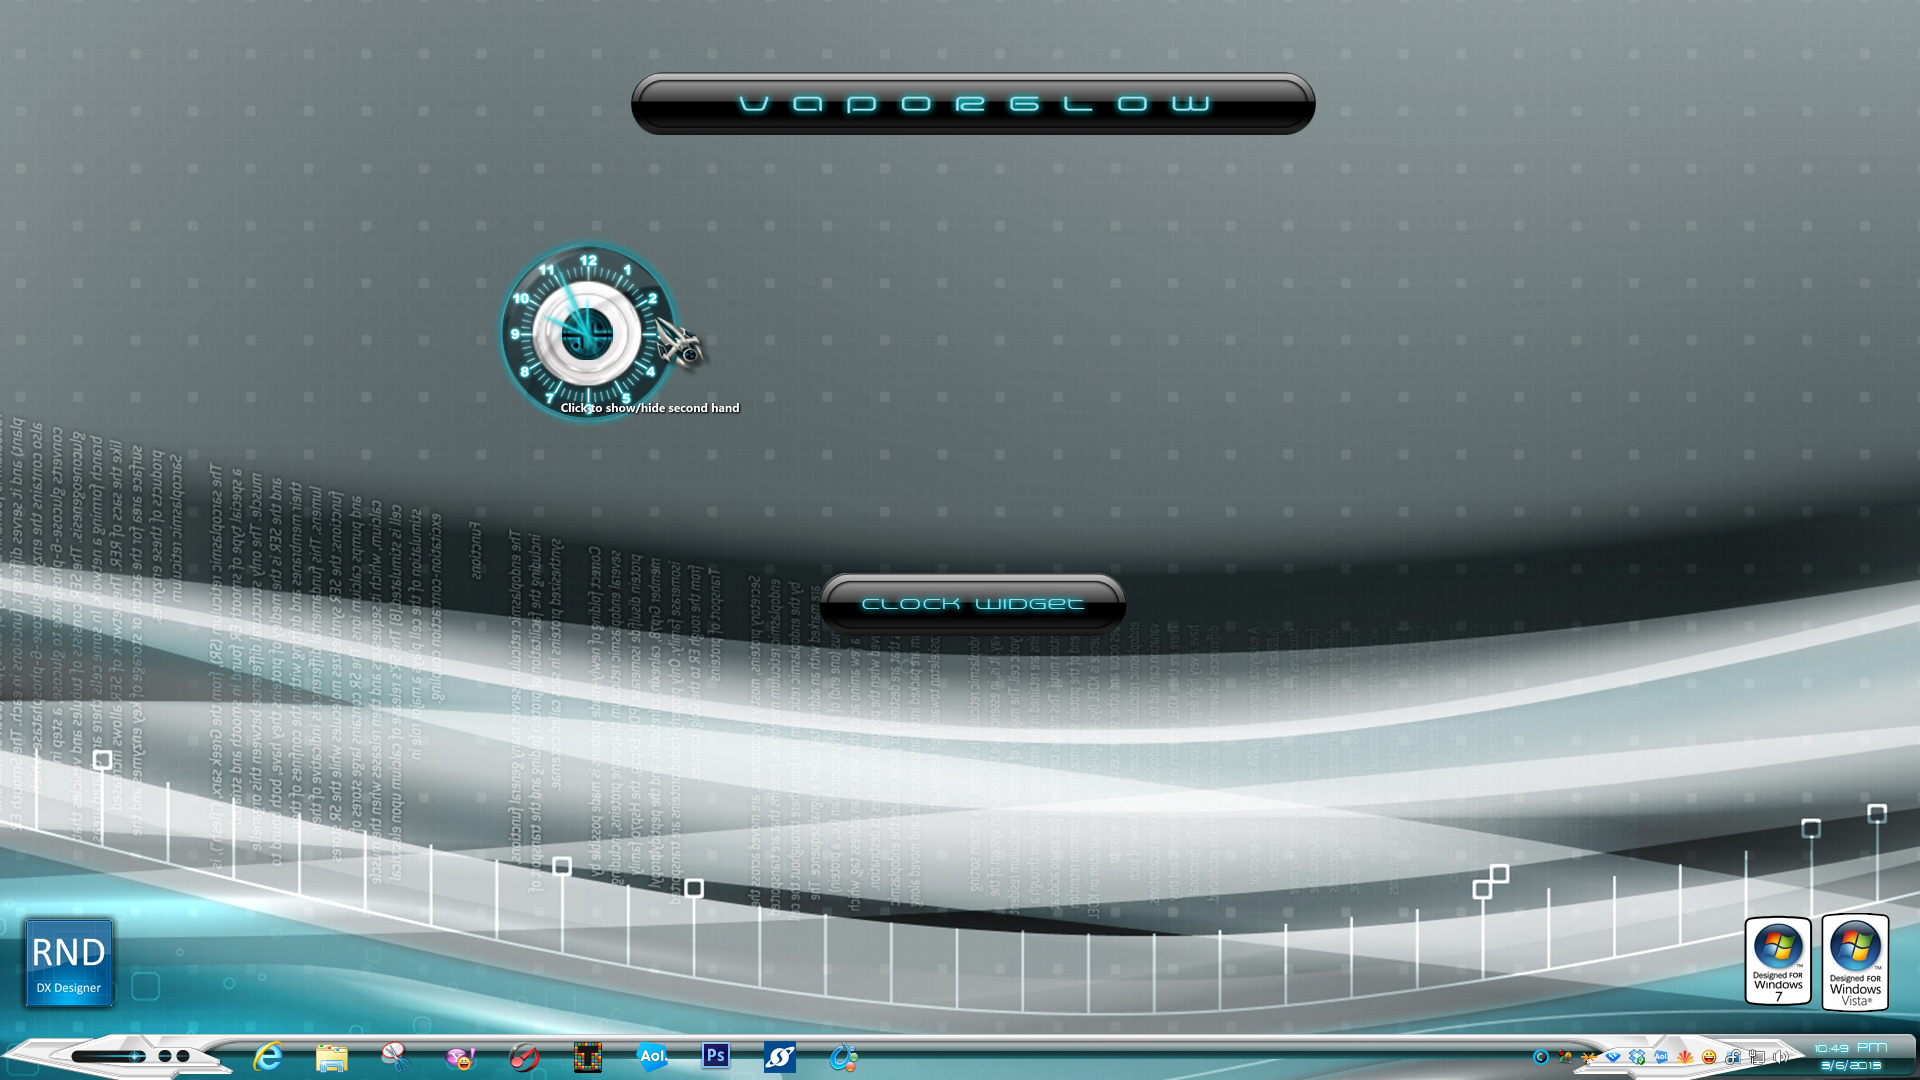 Vaporglow Clock Widget